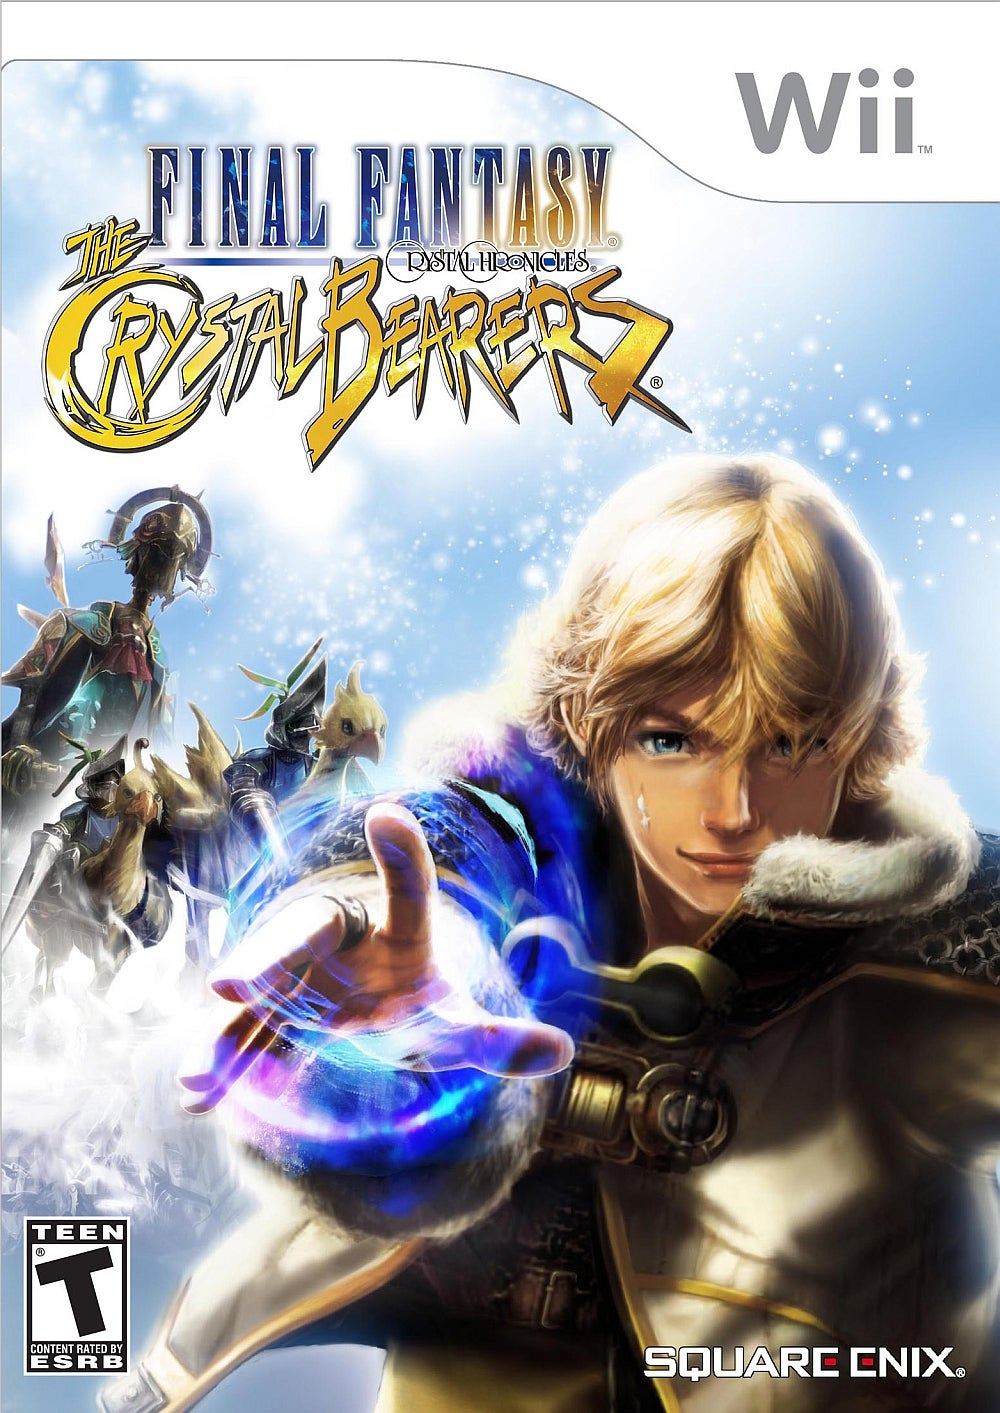 Final Fantasy Crystal Chronicles Crystal Bearers Wii IGN